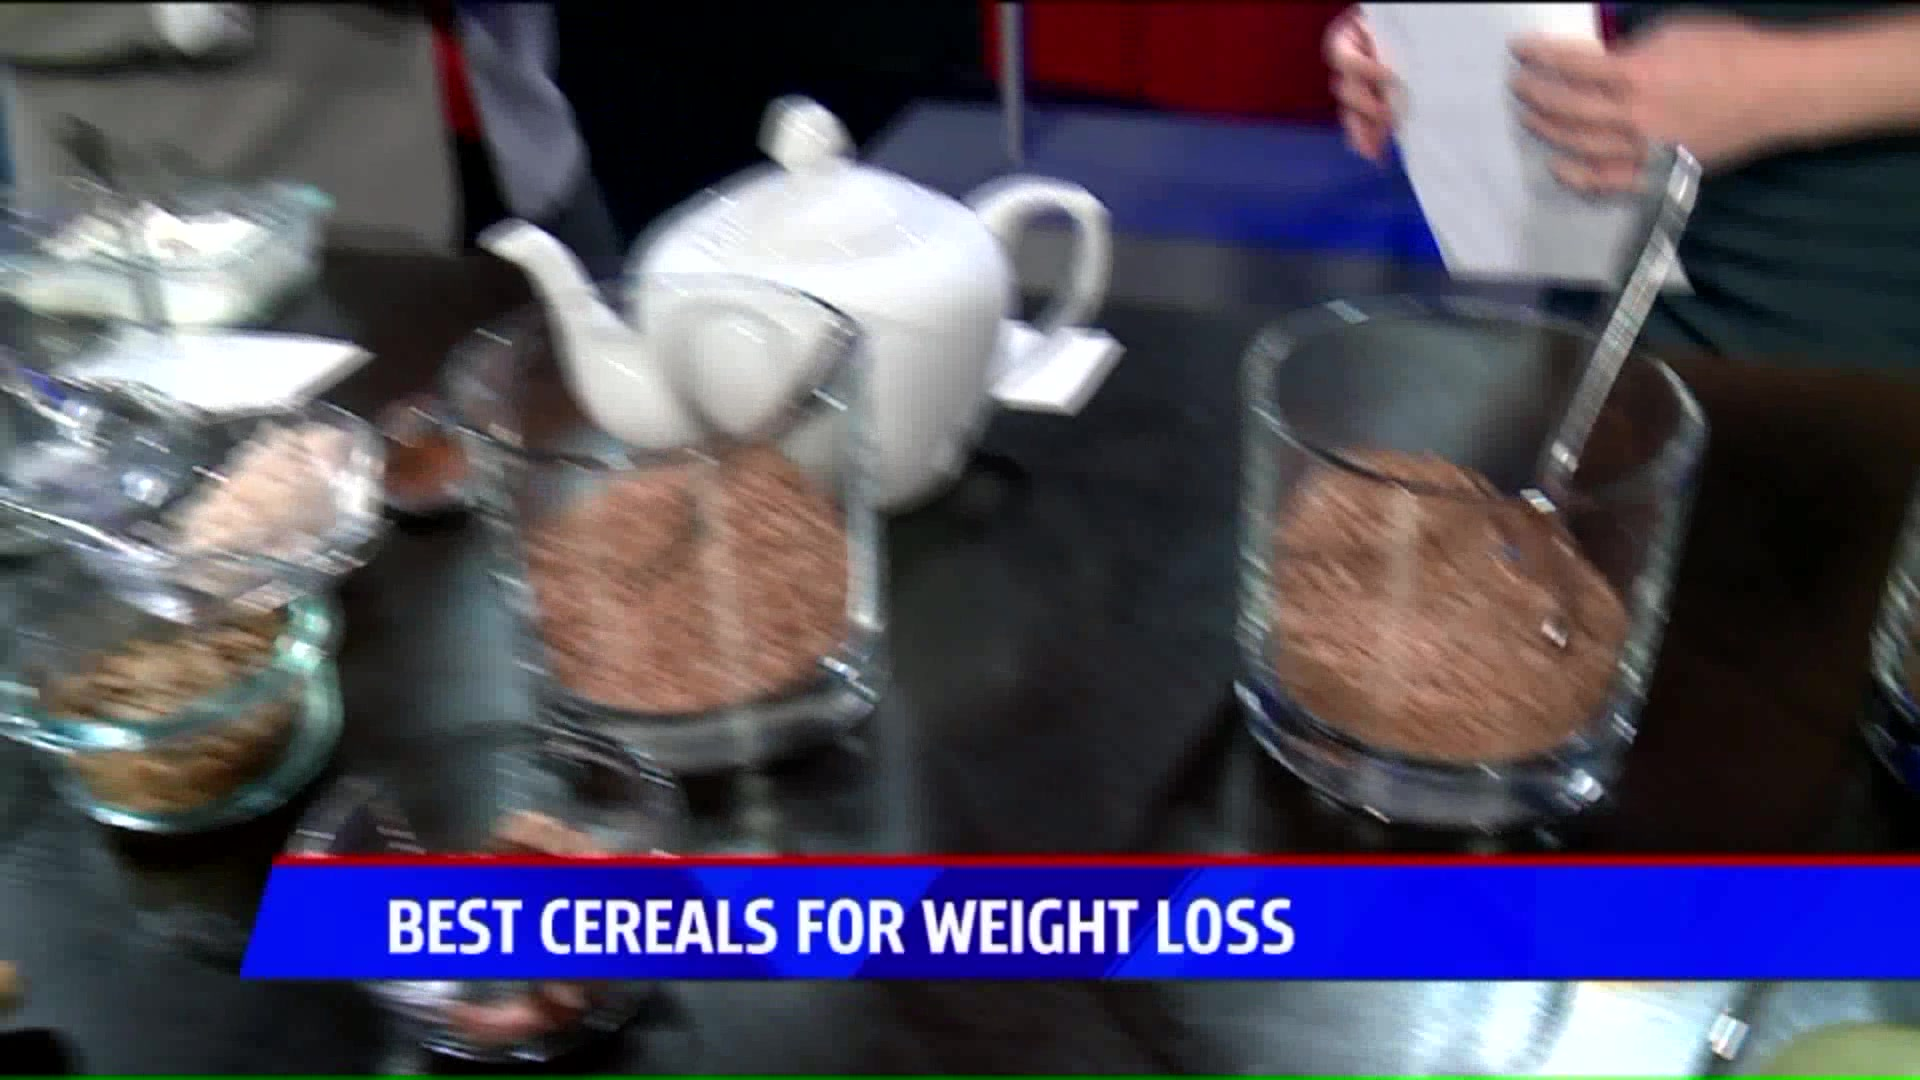 The Best Cereals for Weight Loss